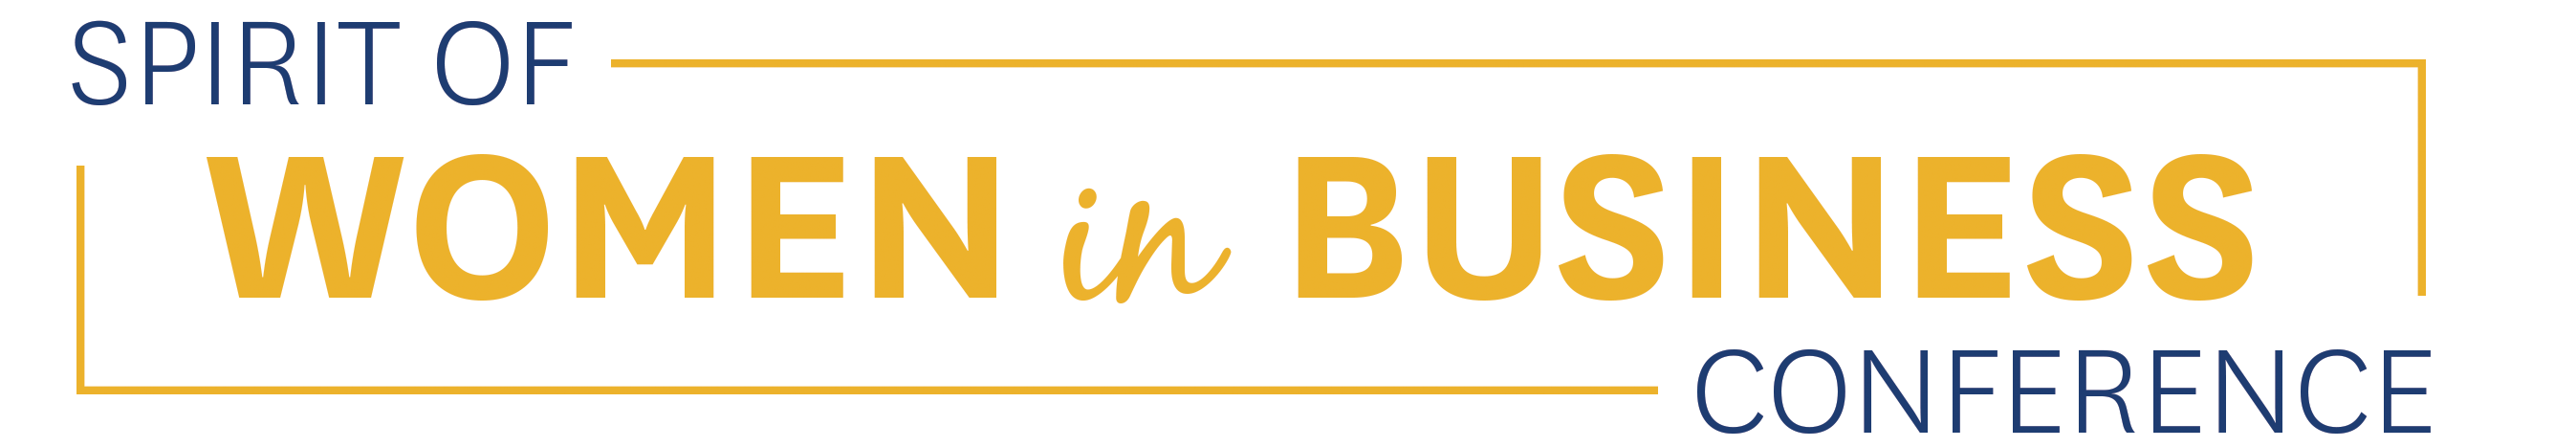 Spirit of Women in Business Conference Logo